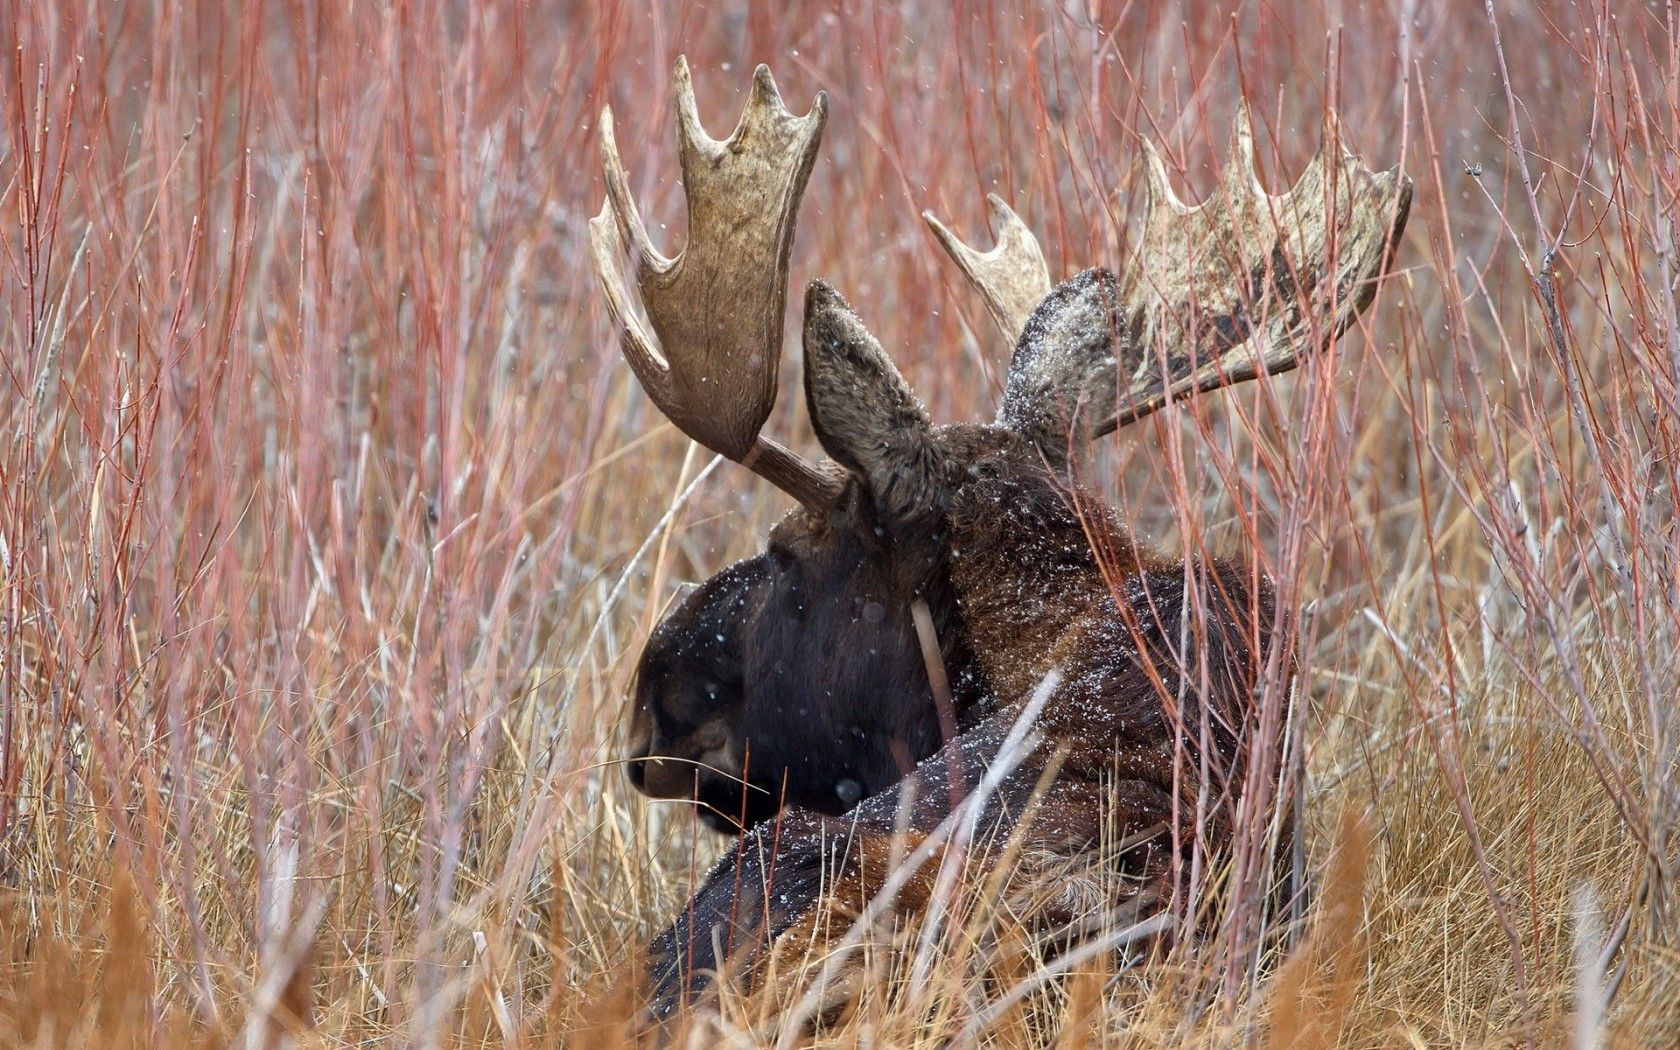 144793 download wallpaper Animals, Elk, Horns, Nature screensavers and pictures for free